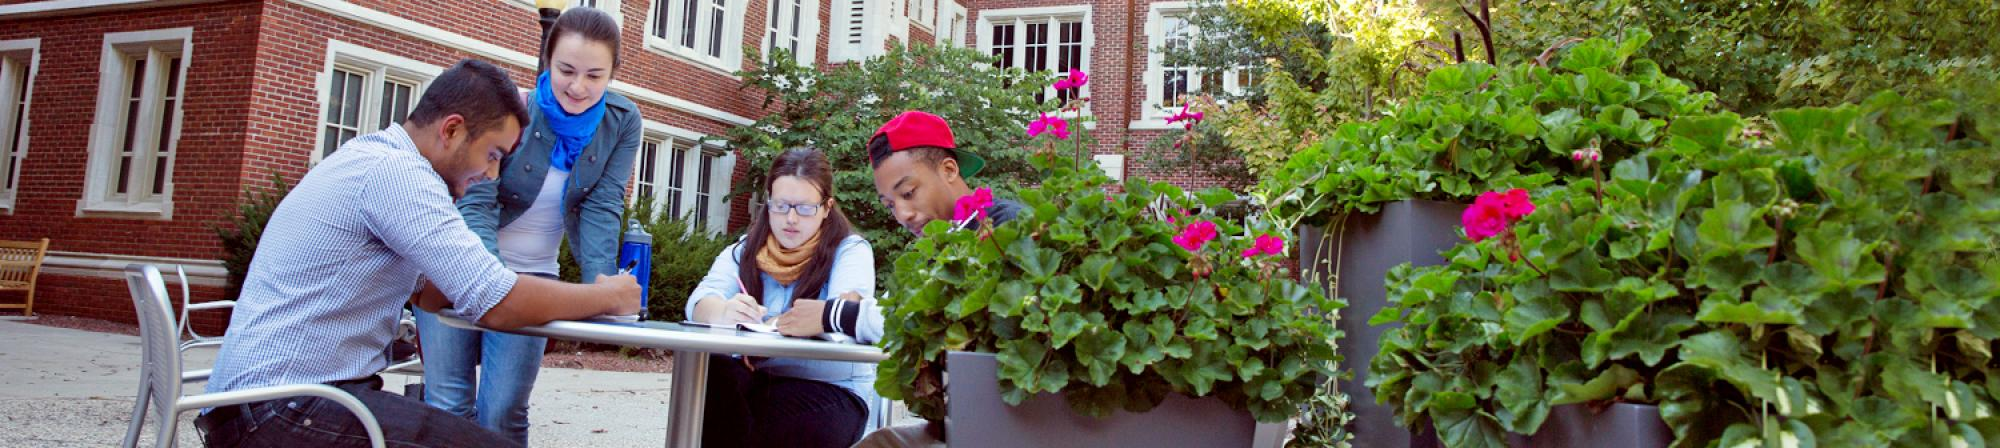 Students in an outdoor discussion